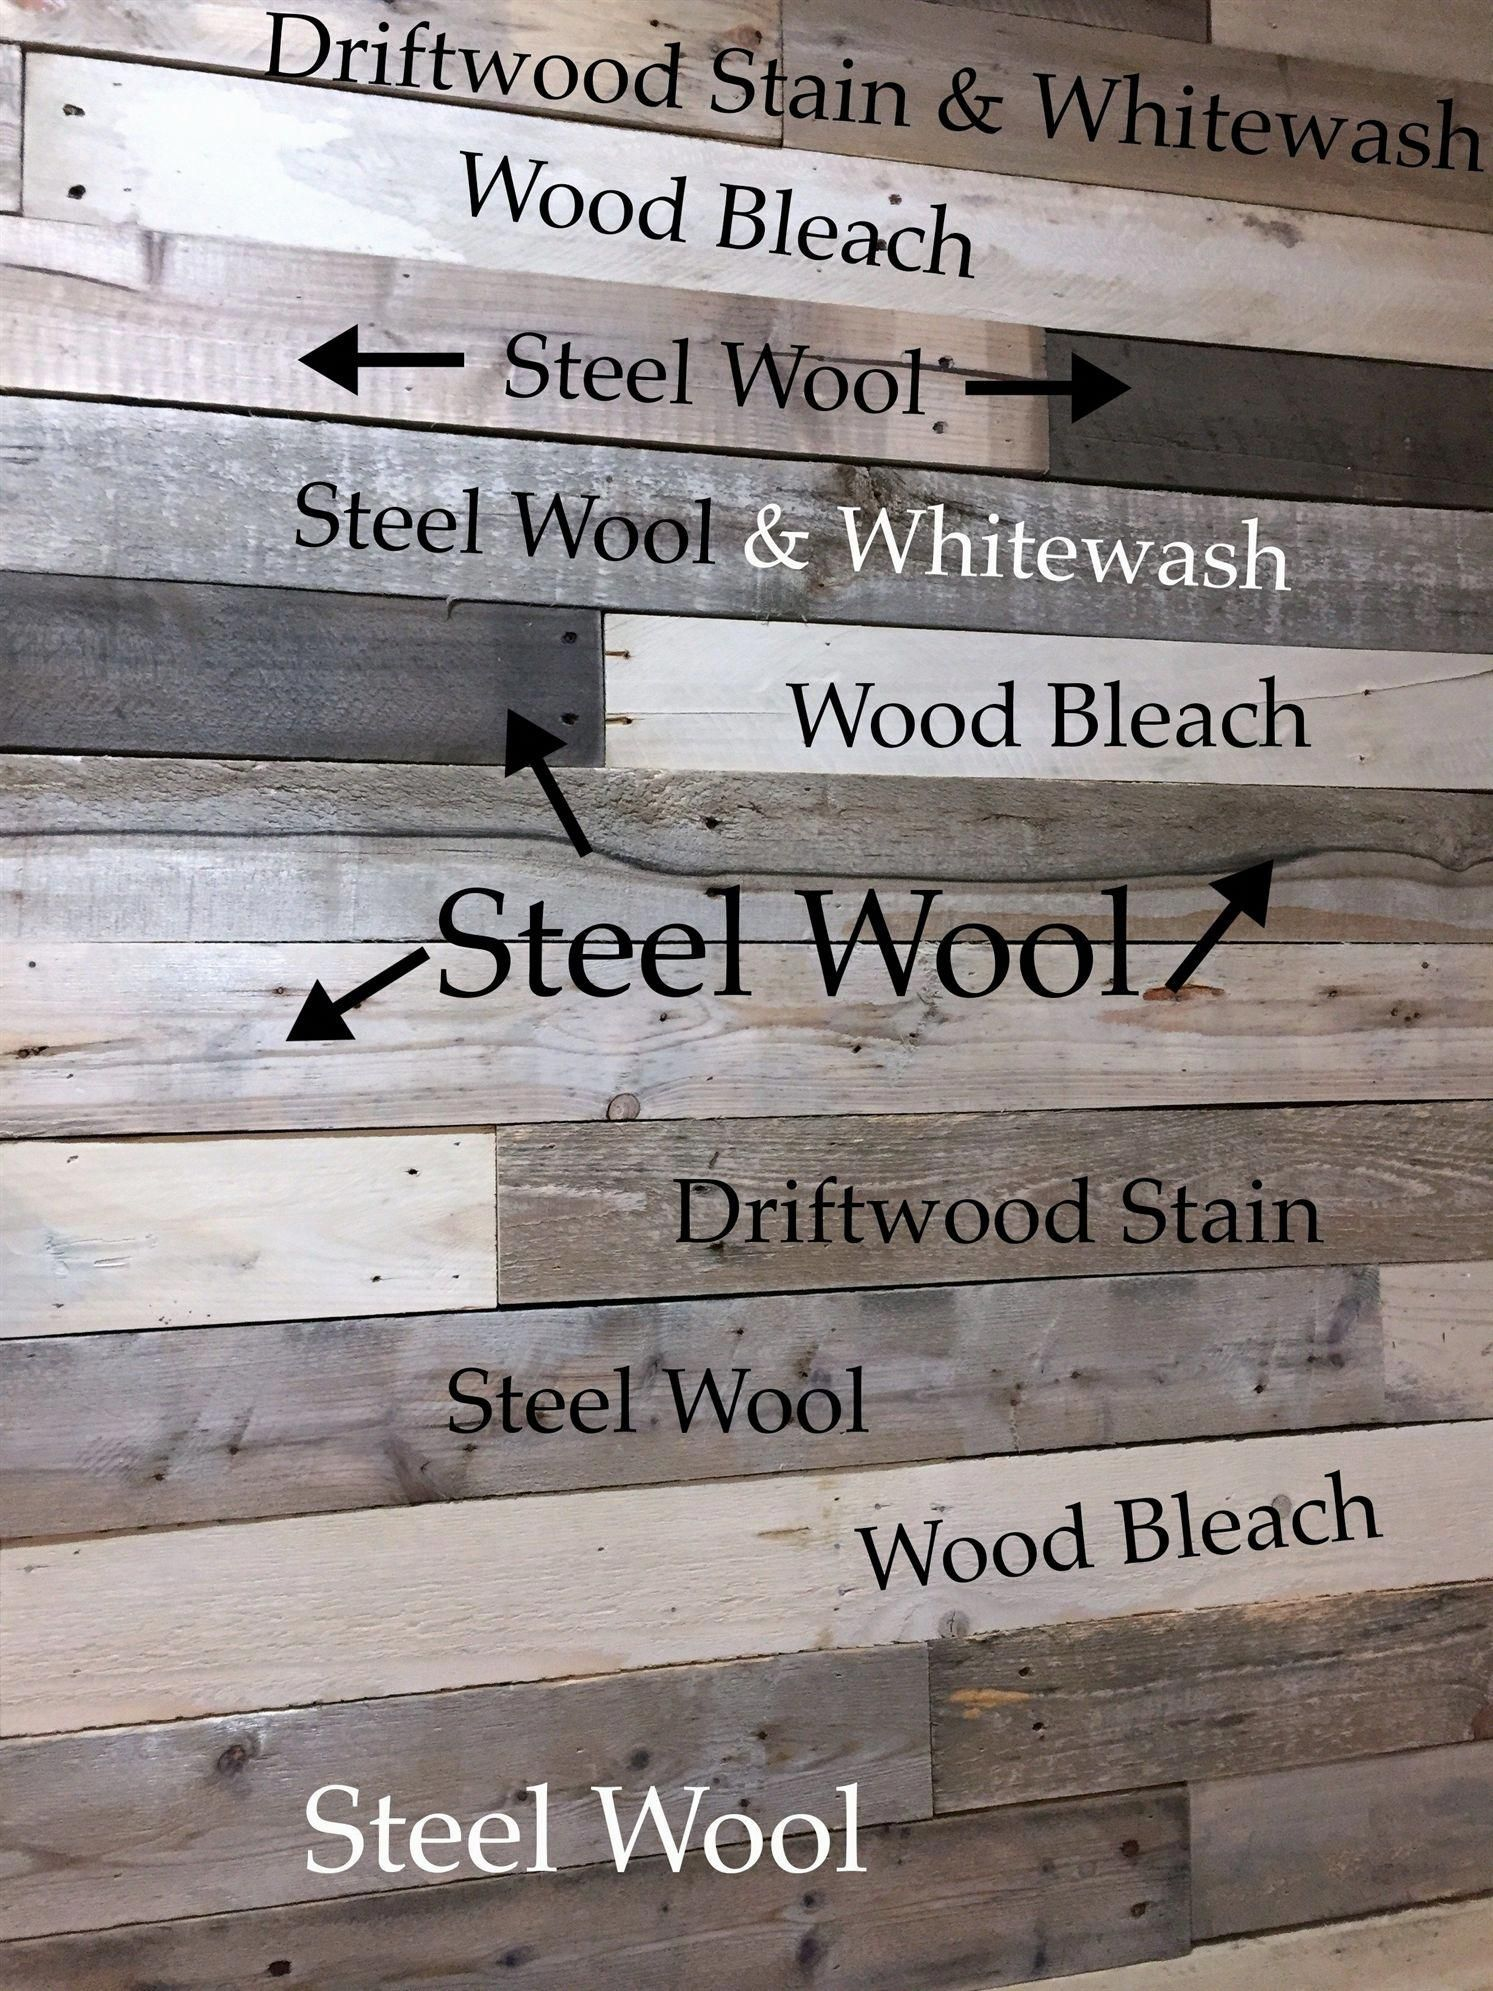 Build Wood Pallet Wall Make New Wood Look Old Aged Weathered Distressed Palletwoodfurniture Diy Wooden Projects Wood Pallet Wall Wooden Diy